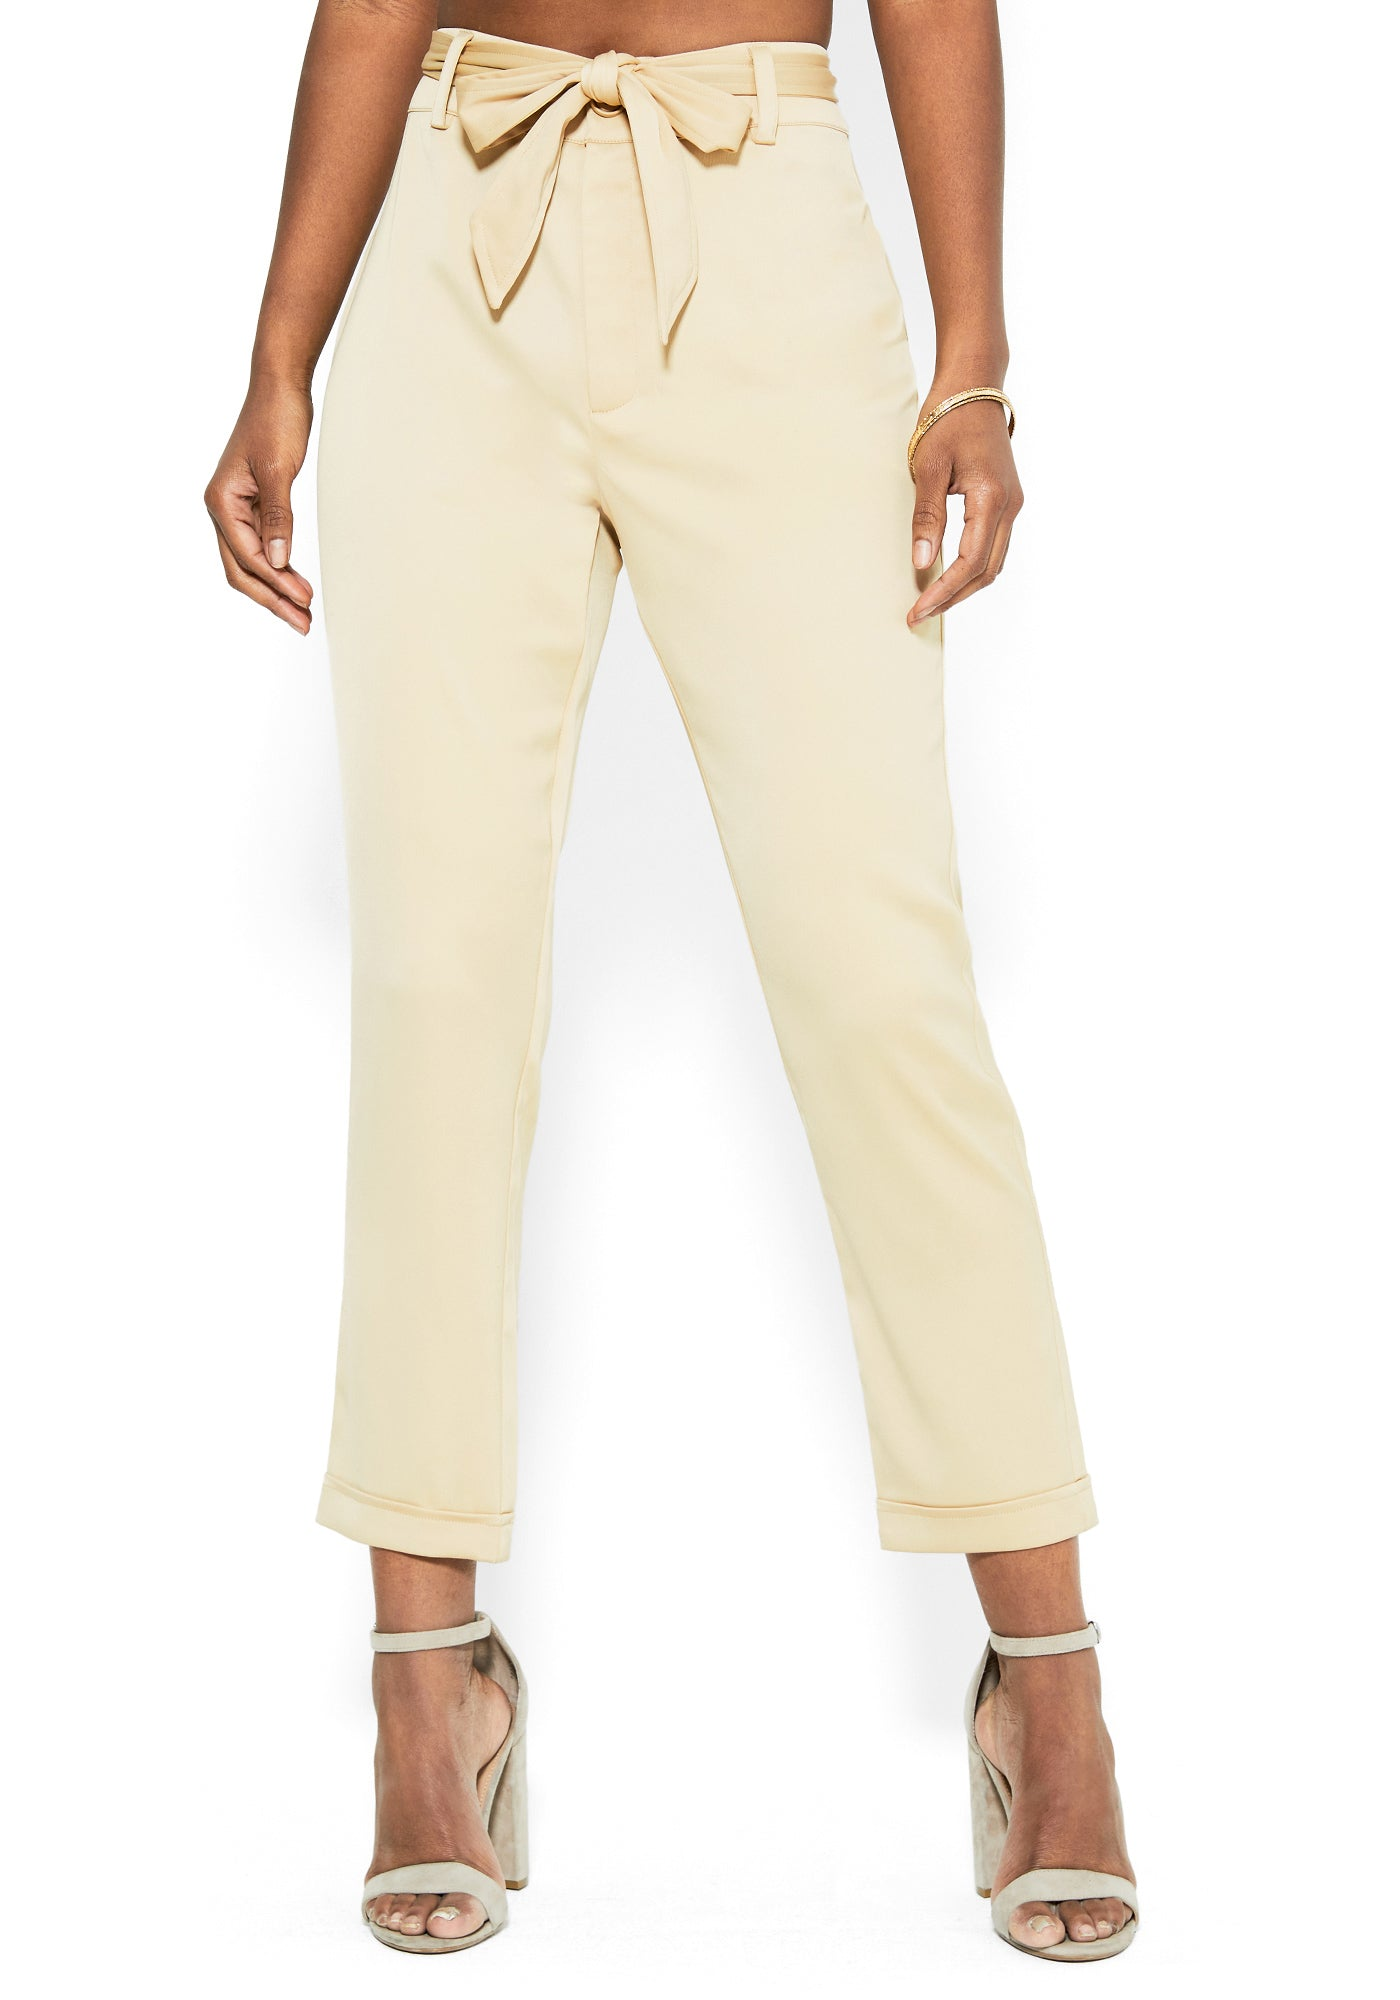 Bebe Women's Stretch Satin Bow Waist Trouser, Size 00 in SESAME Polyester